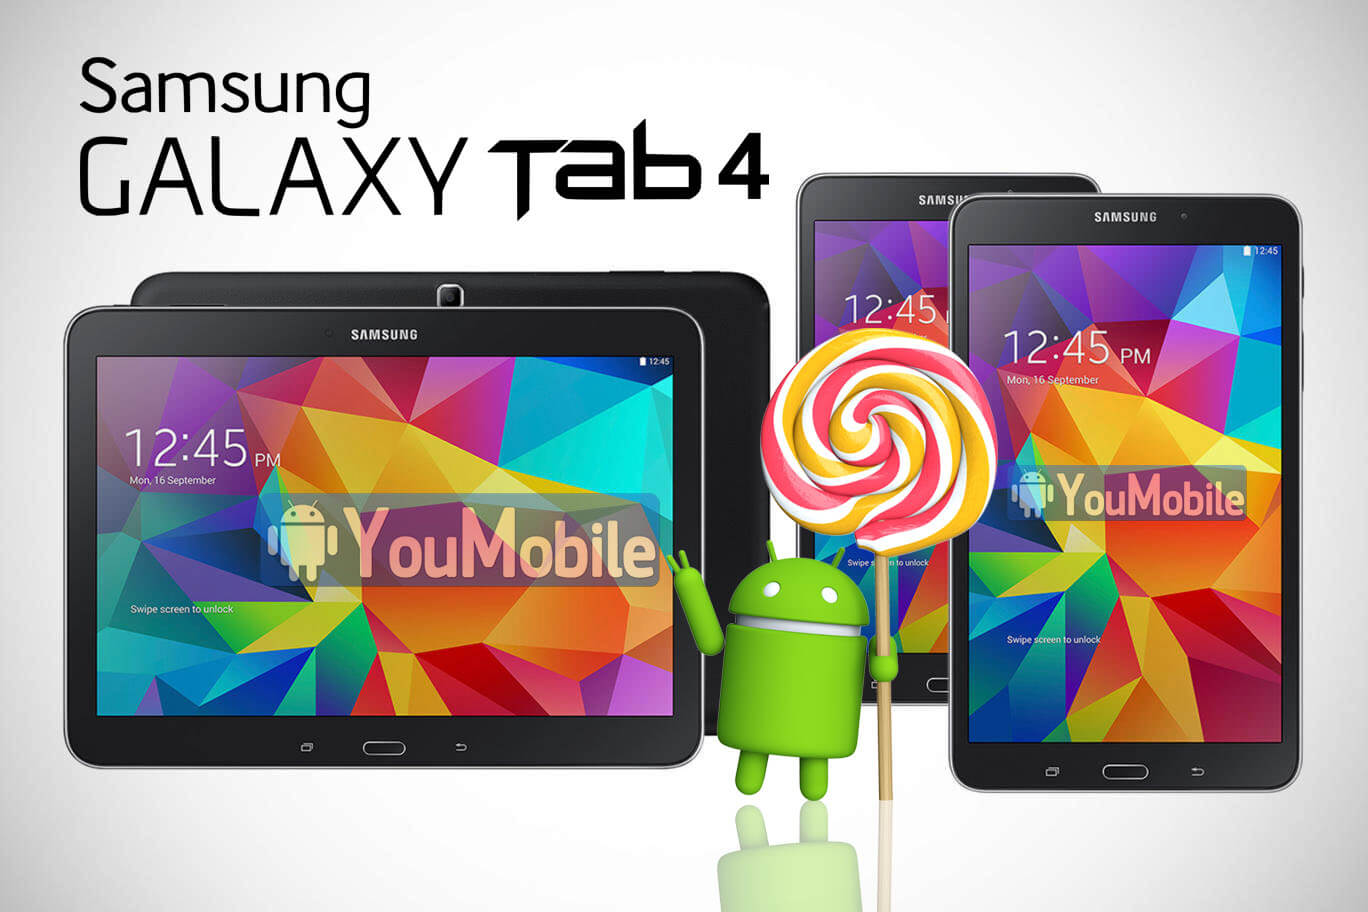 Samsung Galaxy Tab 4 Android 5.0.2 Lollipop update